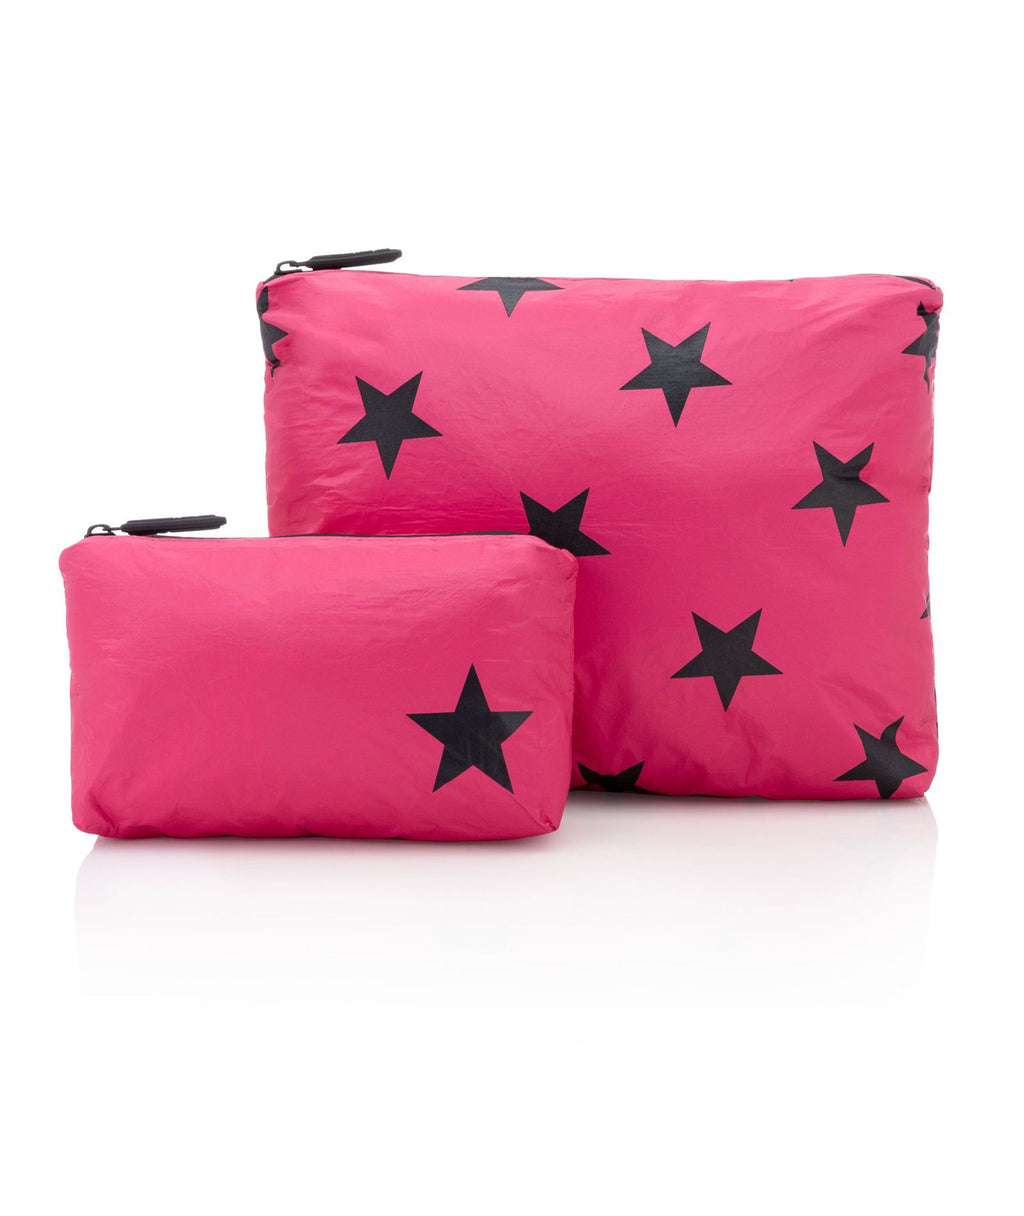 HI Love Travel 2 Pack Hot Pink Black Star